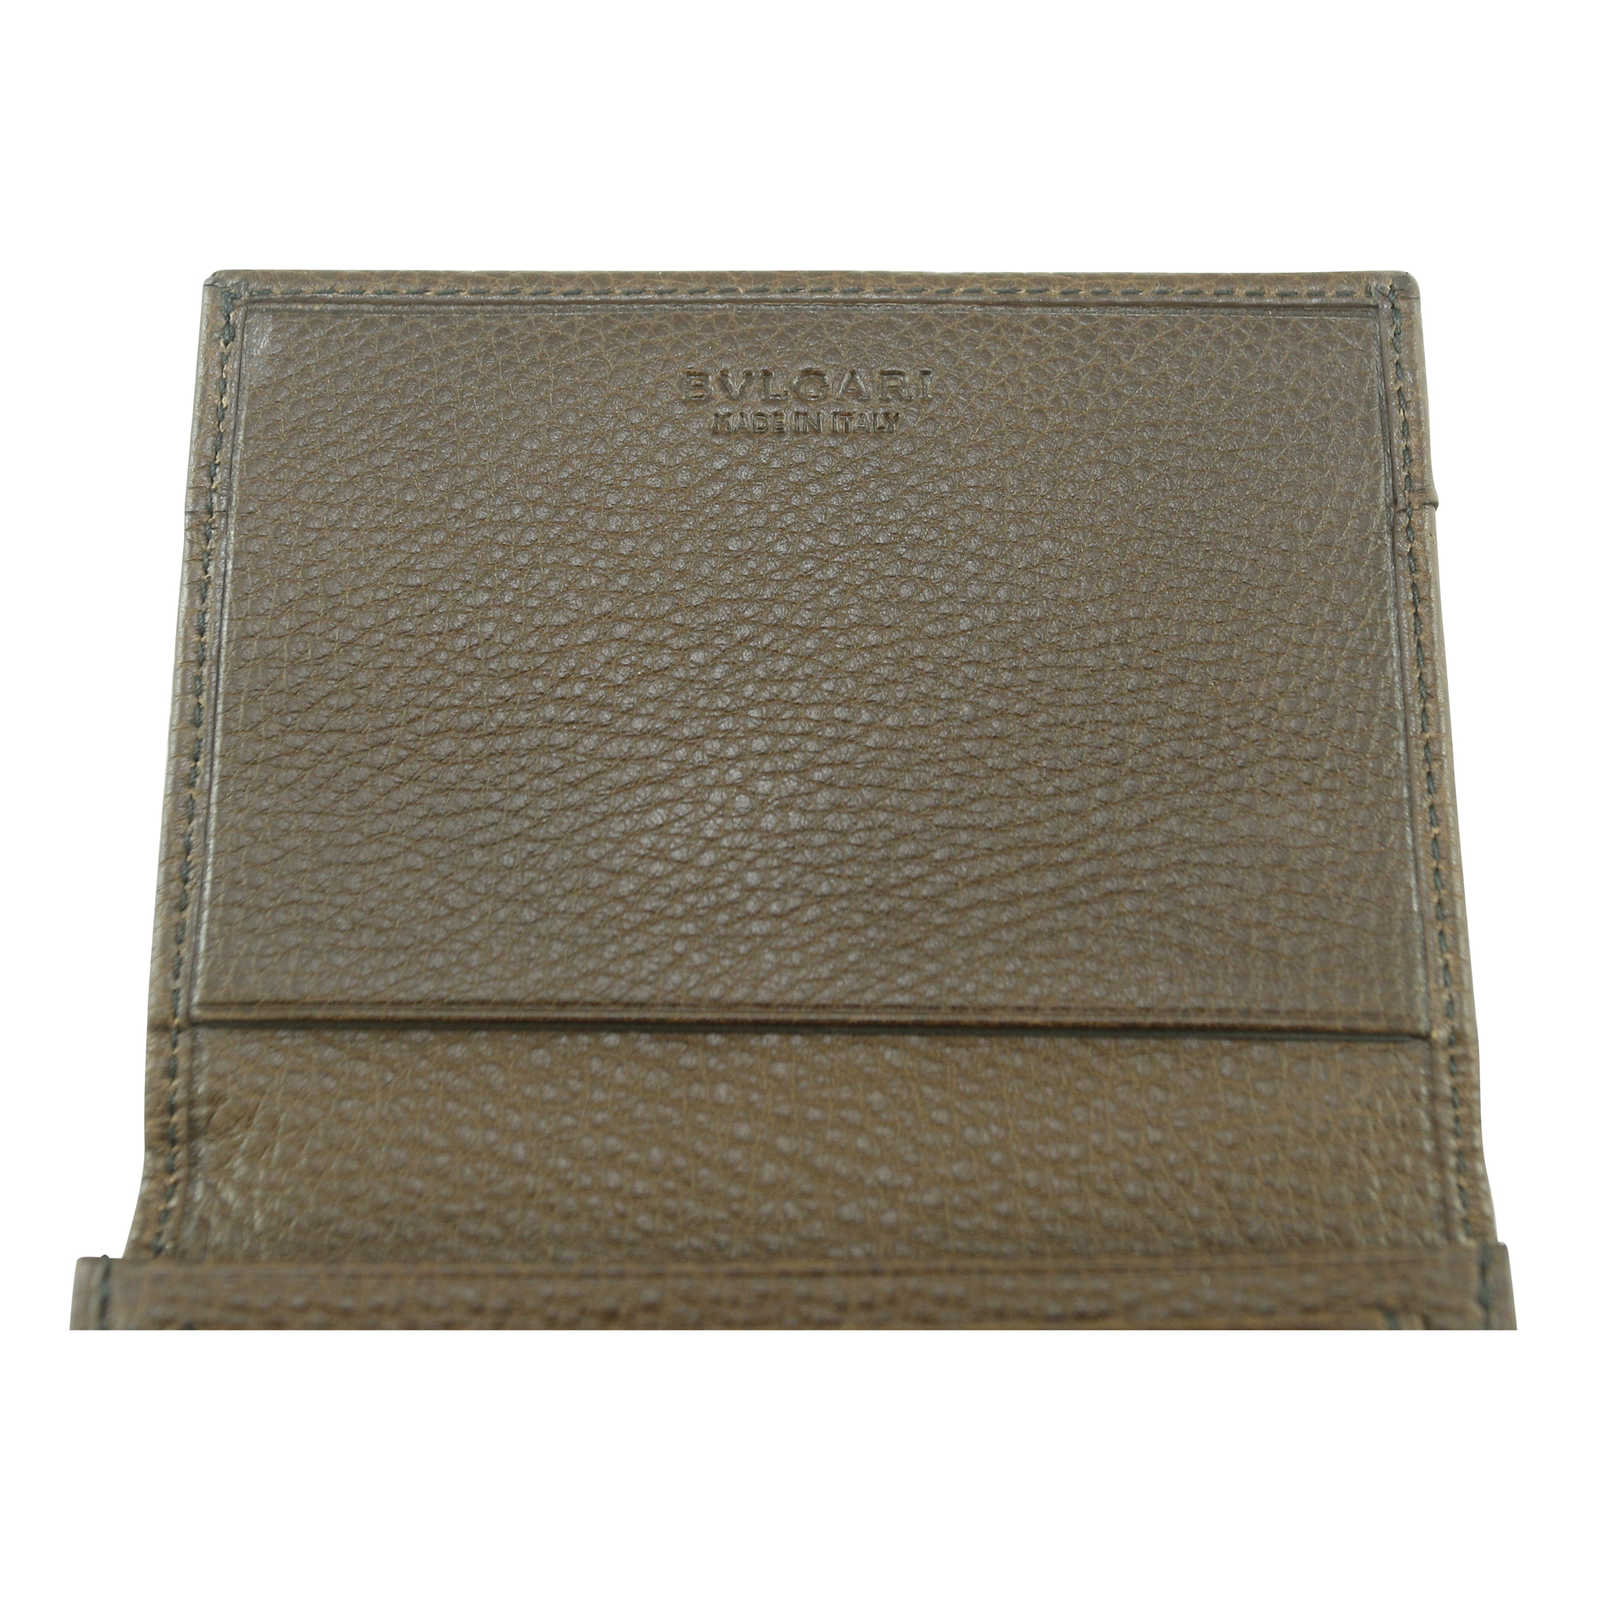 Second Hand Bulgari Business Card Holder | THE FIFTH COLLECTION